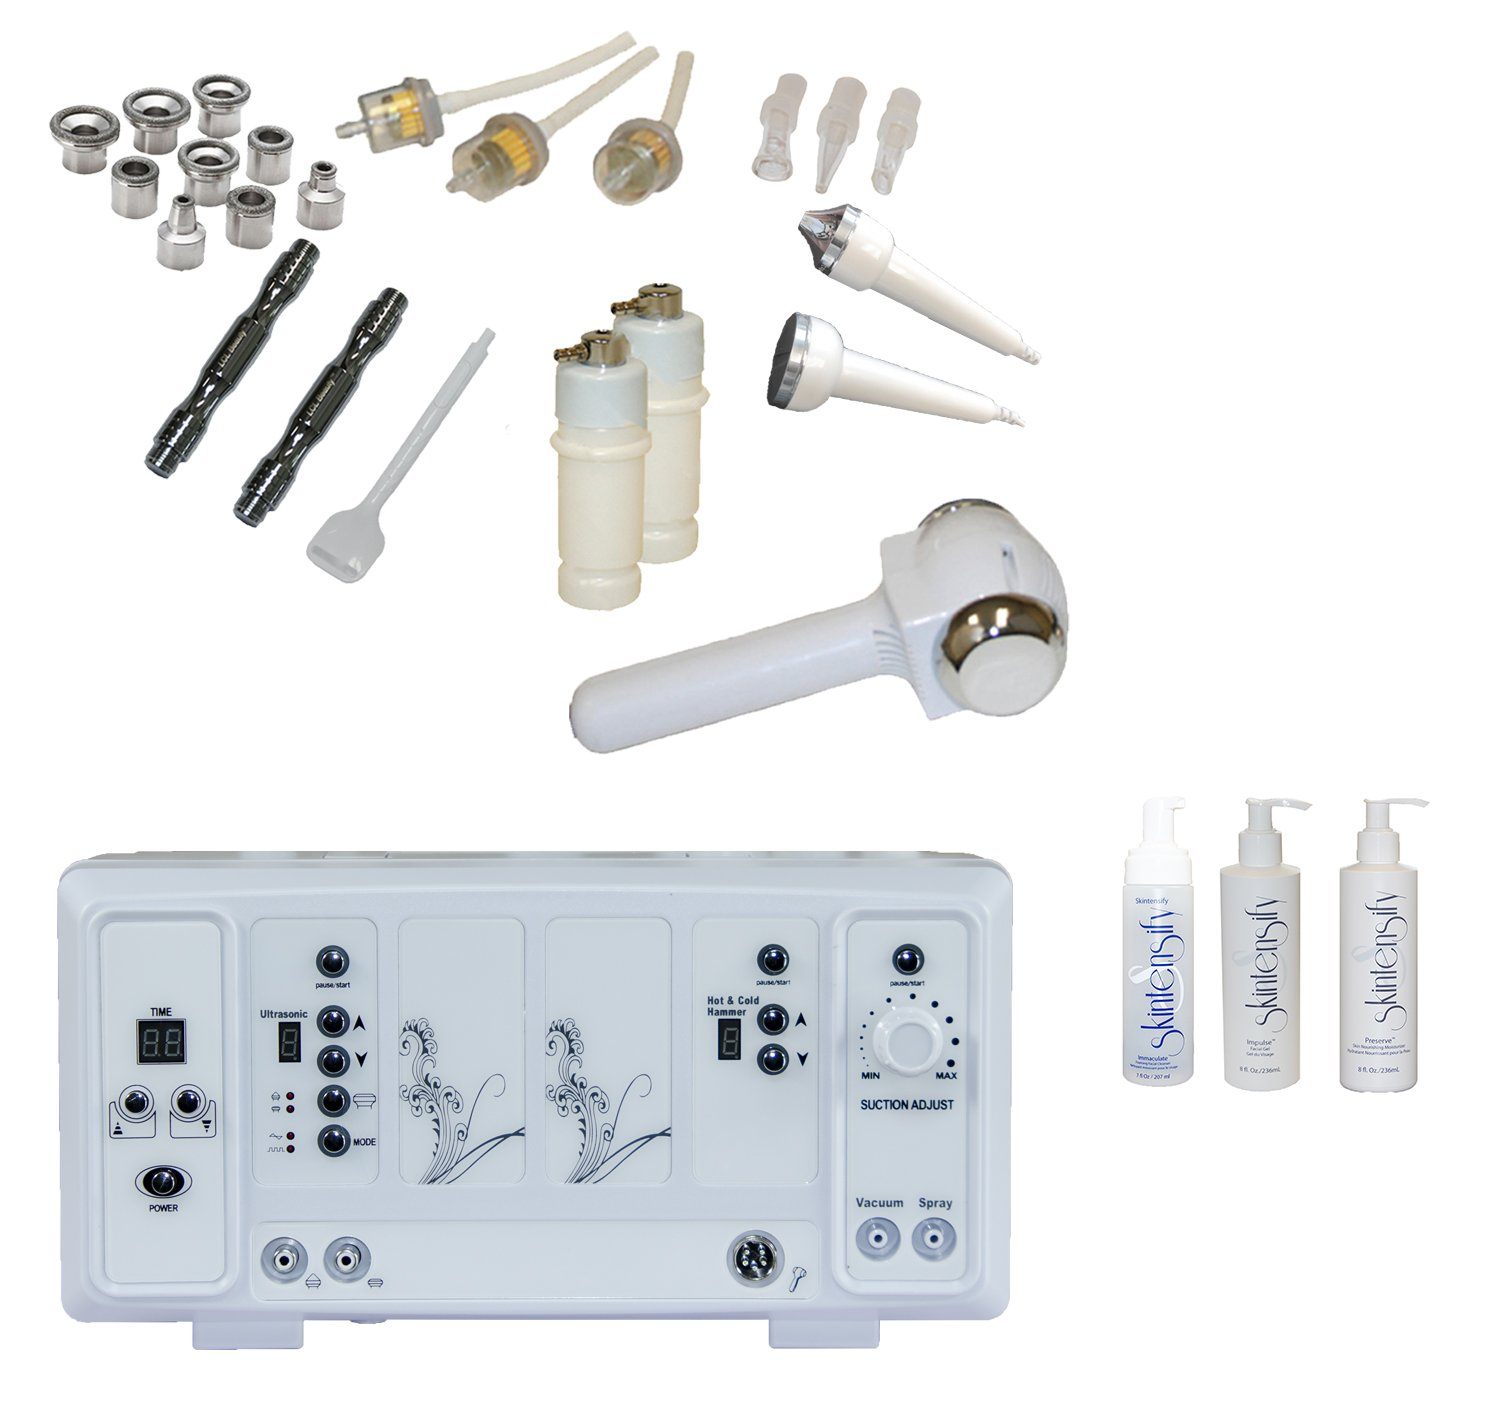 LCL Beauty Professional 5 in 1 Microdermabrasion Multi-Function Facial Machine